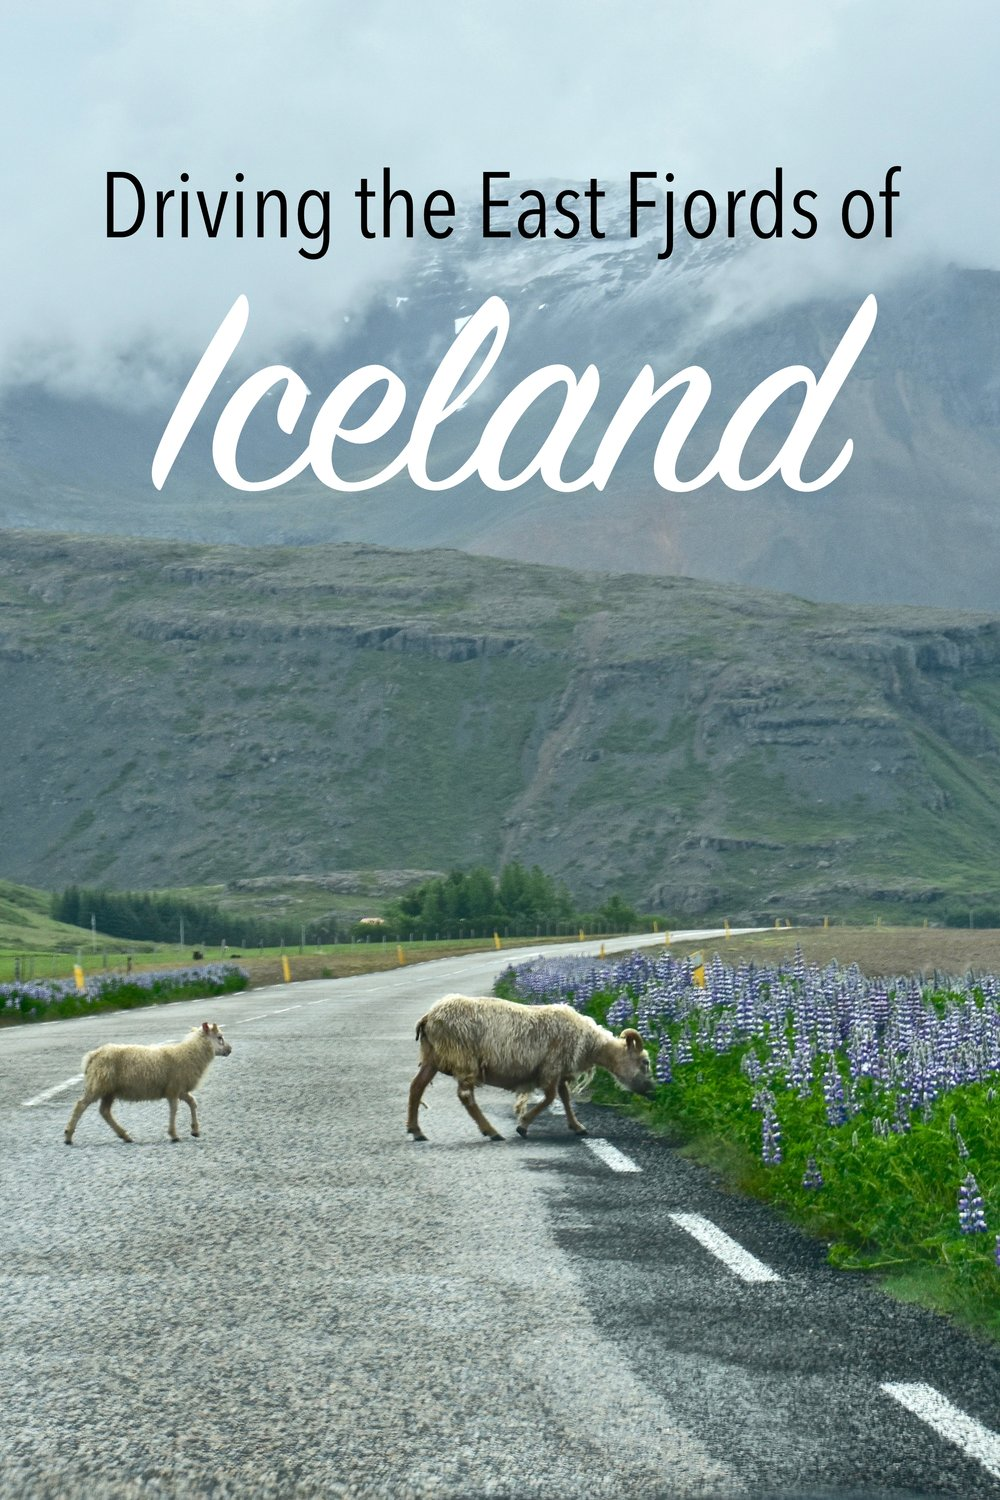 Our third day driving Iceland's Ring Road along the East Fjords.  Going from Hofn to Egilsstadir, we saw fjords, one of the highest waterfalls, cute villages, and black sand beaches. #Iceland #Travel #RingRoad #Höfn #RoadTrip #Fjords #EastFjords